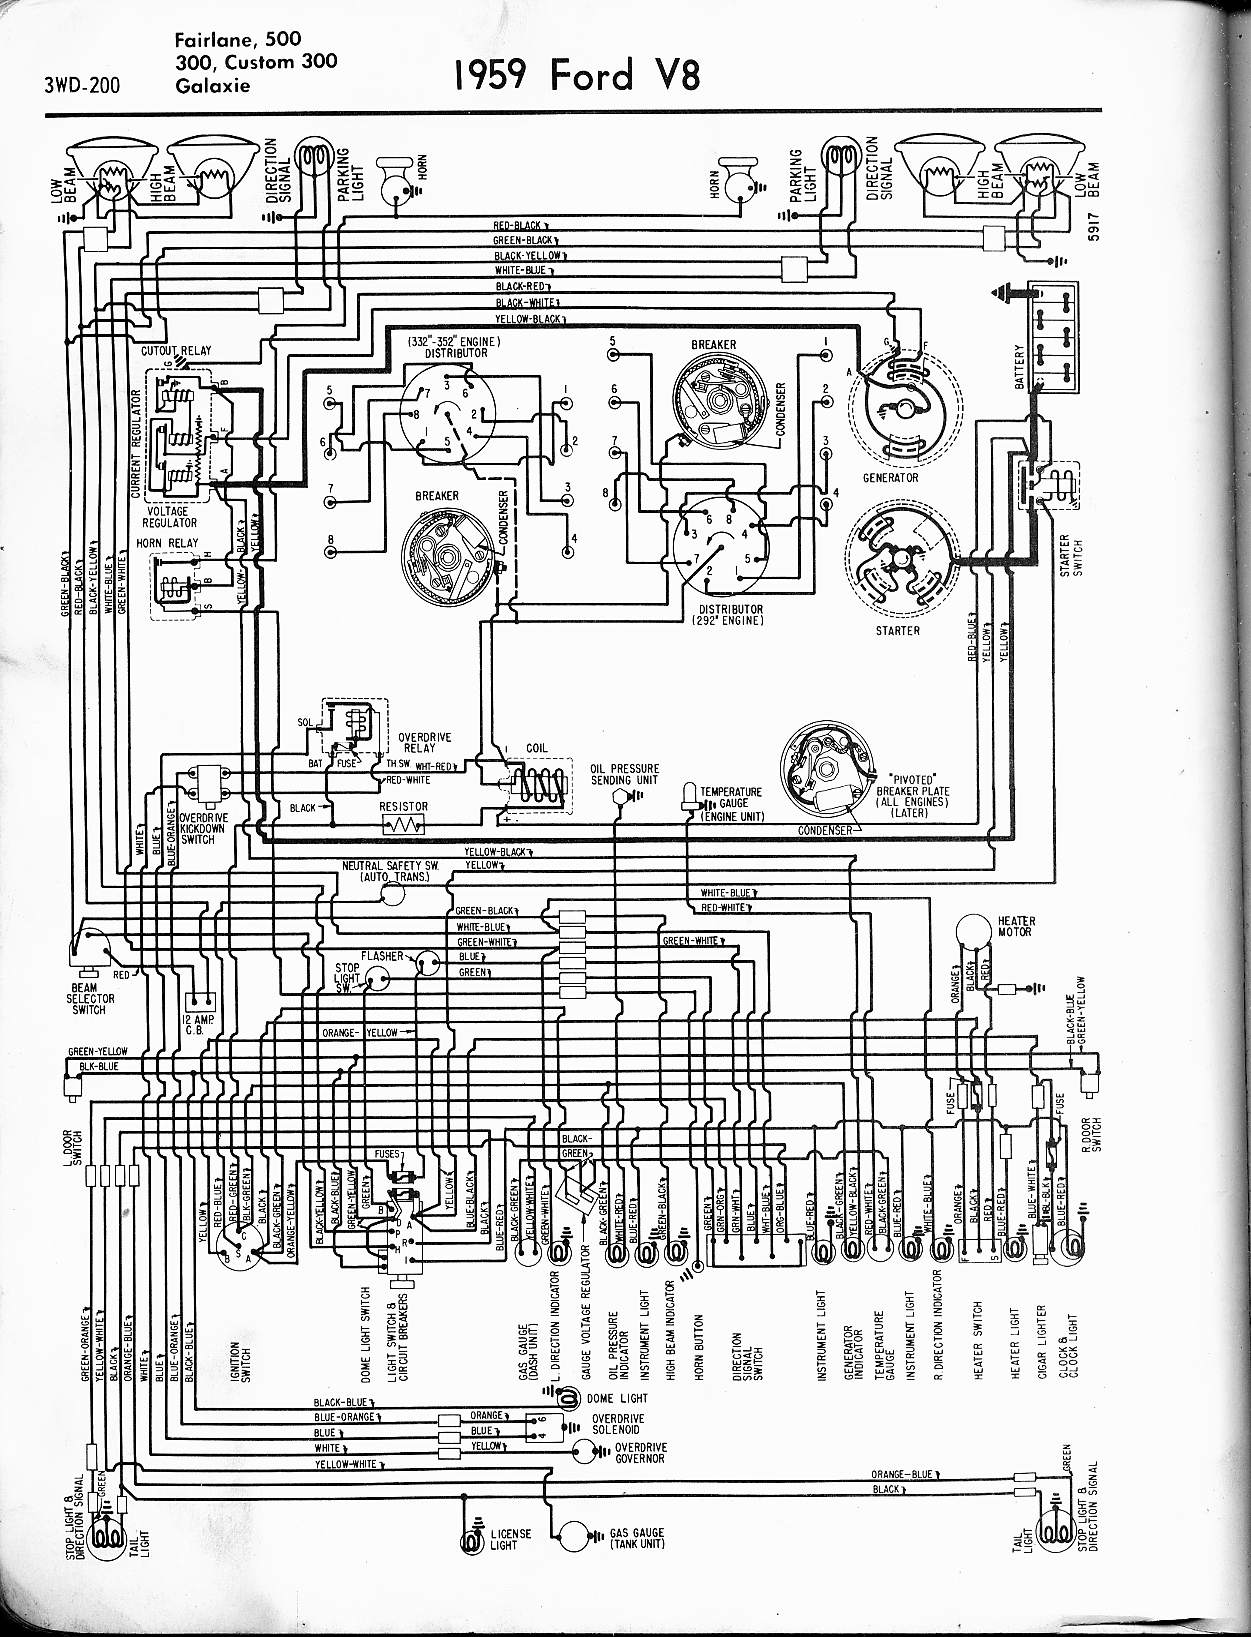 1956 Ford Wiring Diagram Simple Wiring Diagram 2011 Chevrolet Wiring Diagram  1956 Cadillac Wiring Diagram